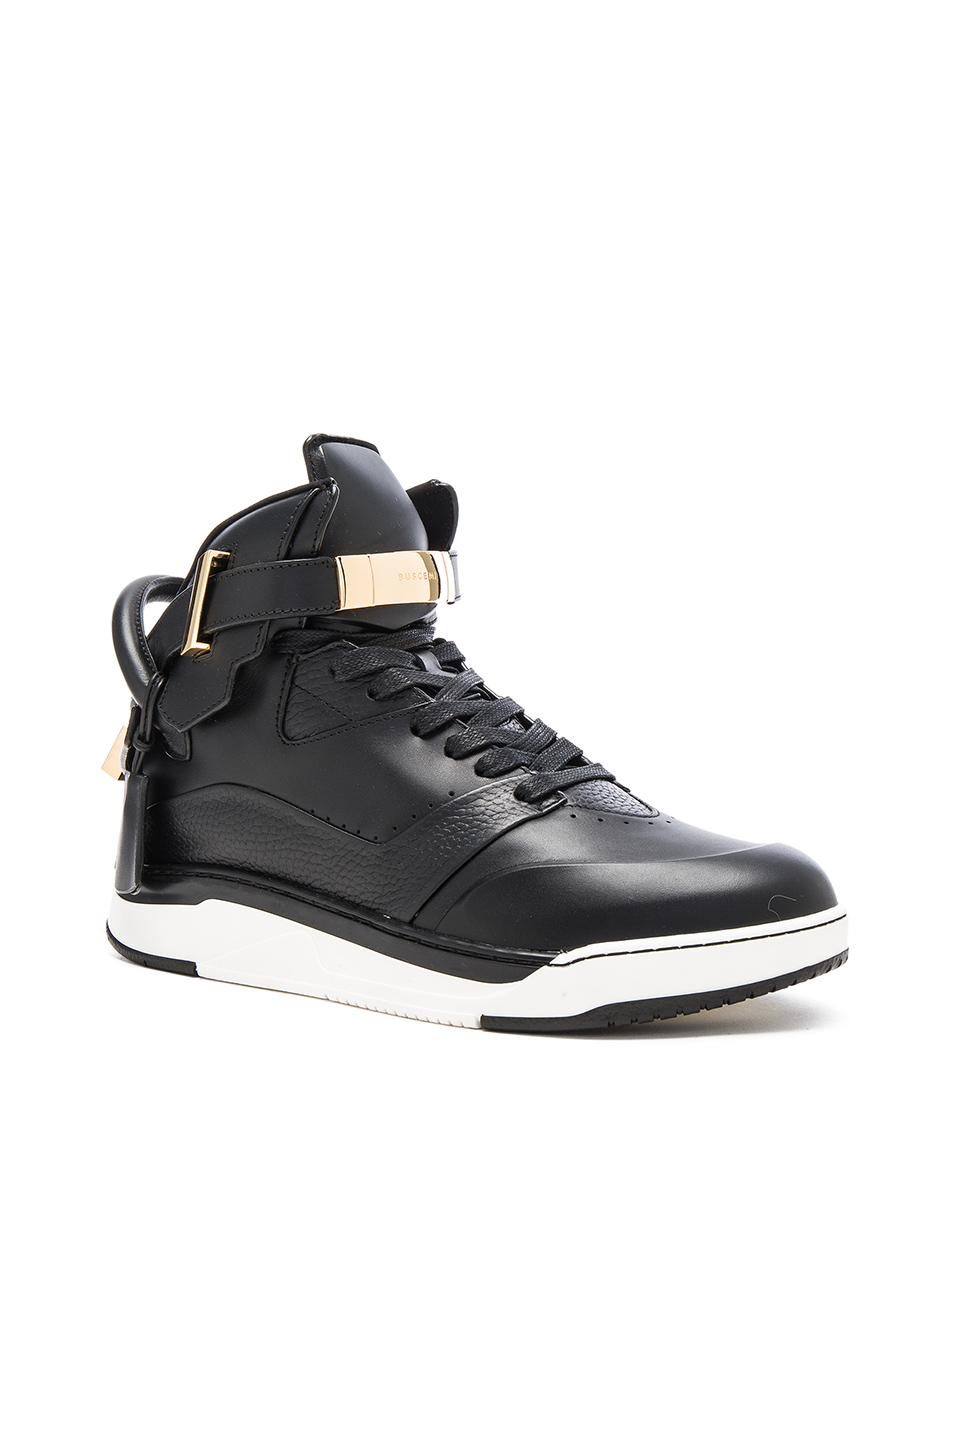 Buscemi B Court Leather Sneakers in Black